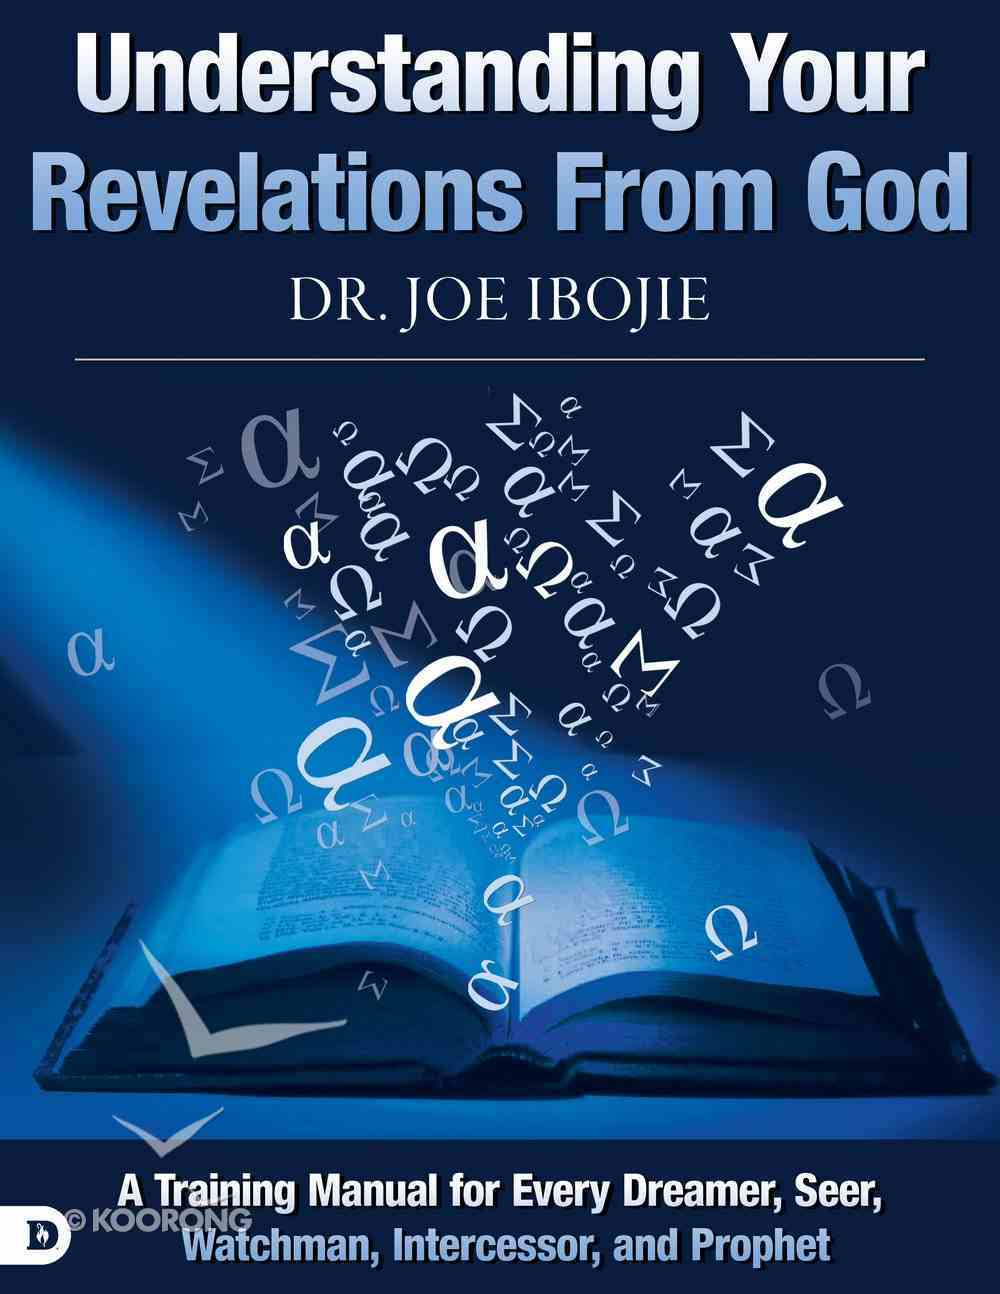 Understanding Your Revelations From God: A Training Manual For Every Dreamer, Seer, Watchman, Intercessor, and Prophet Paperback